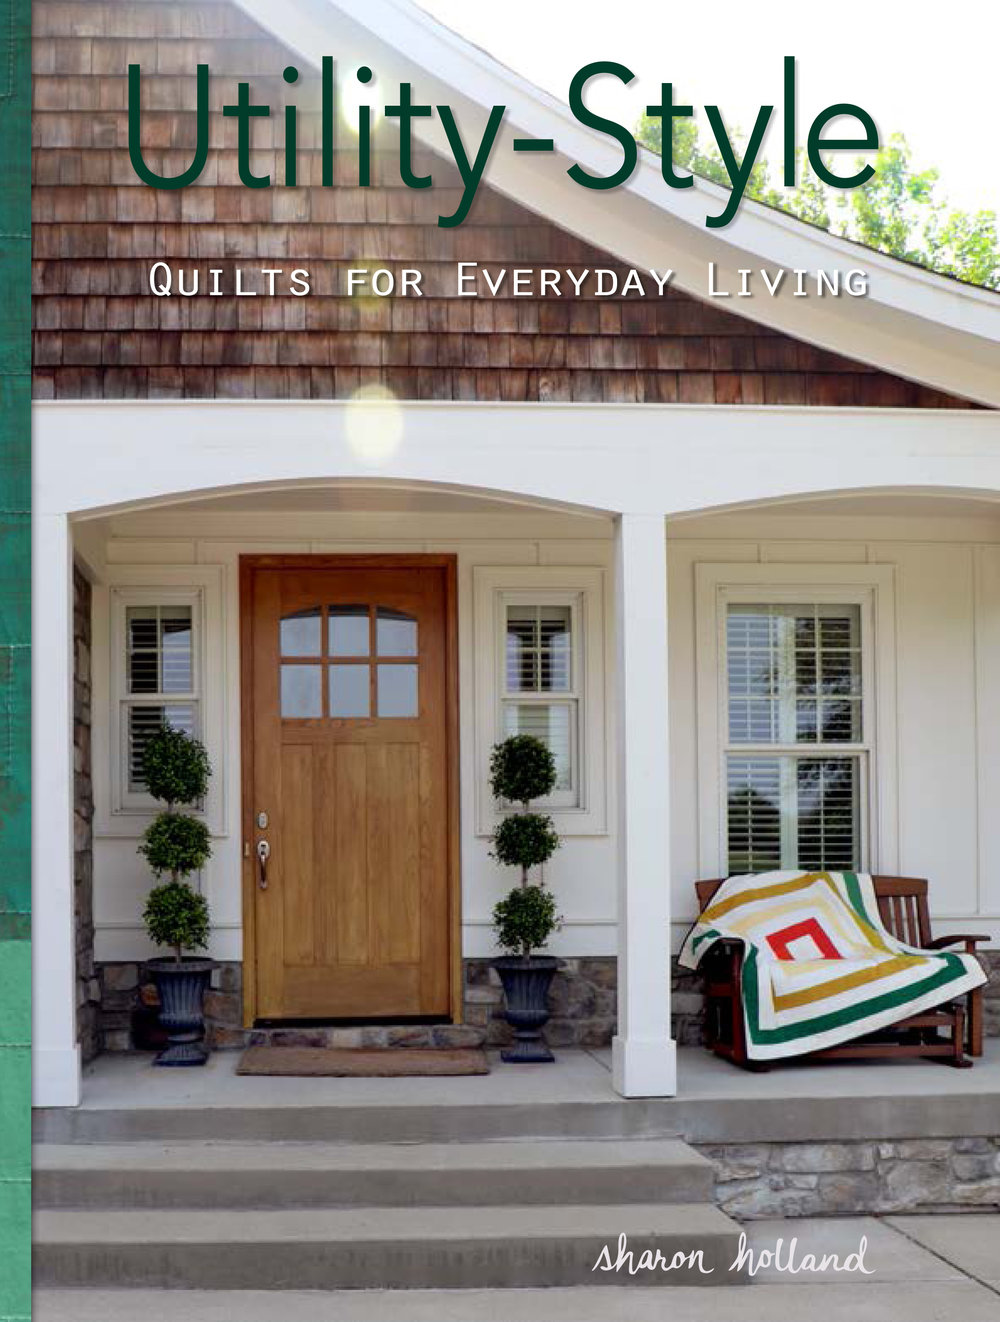 Utility-Style Quilts for Everyday Living Front Cover.jpg